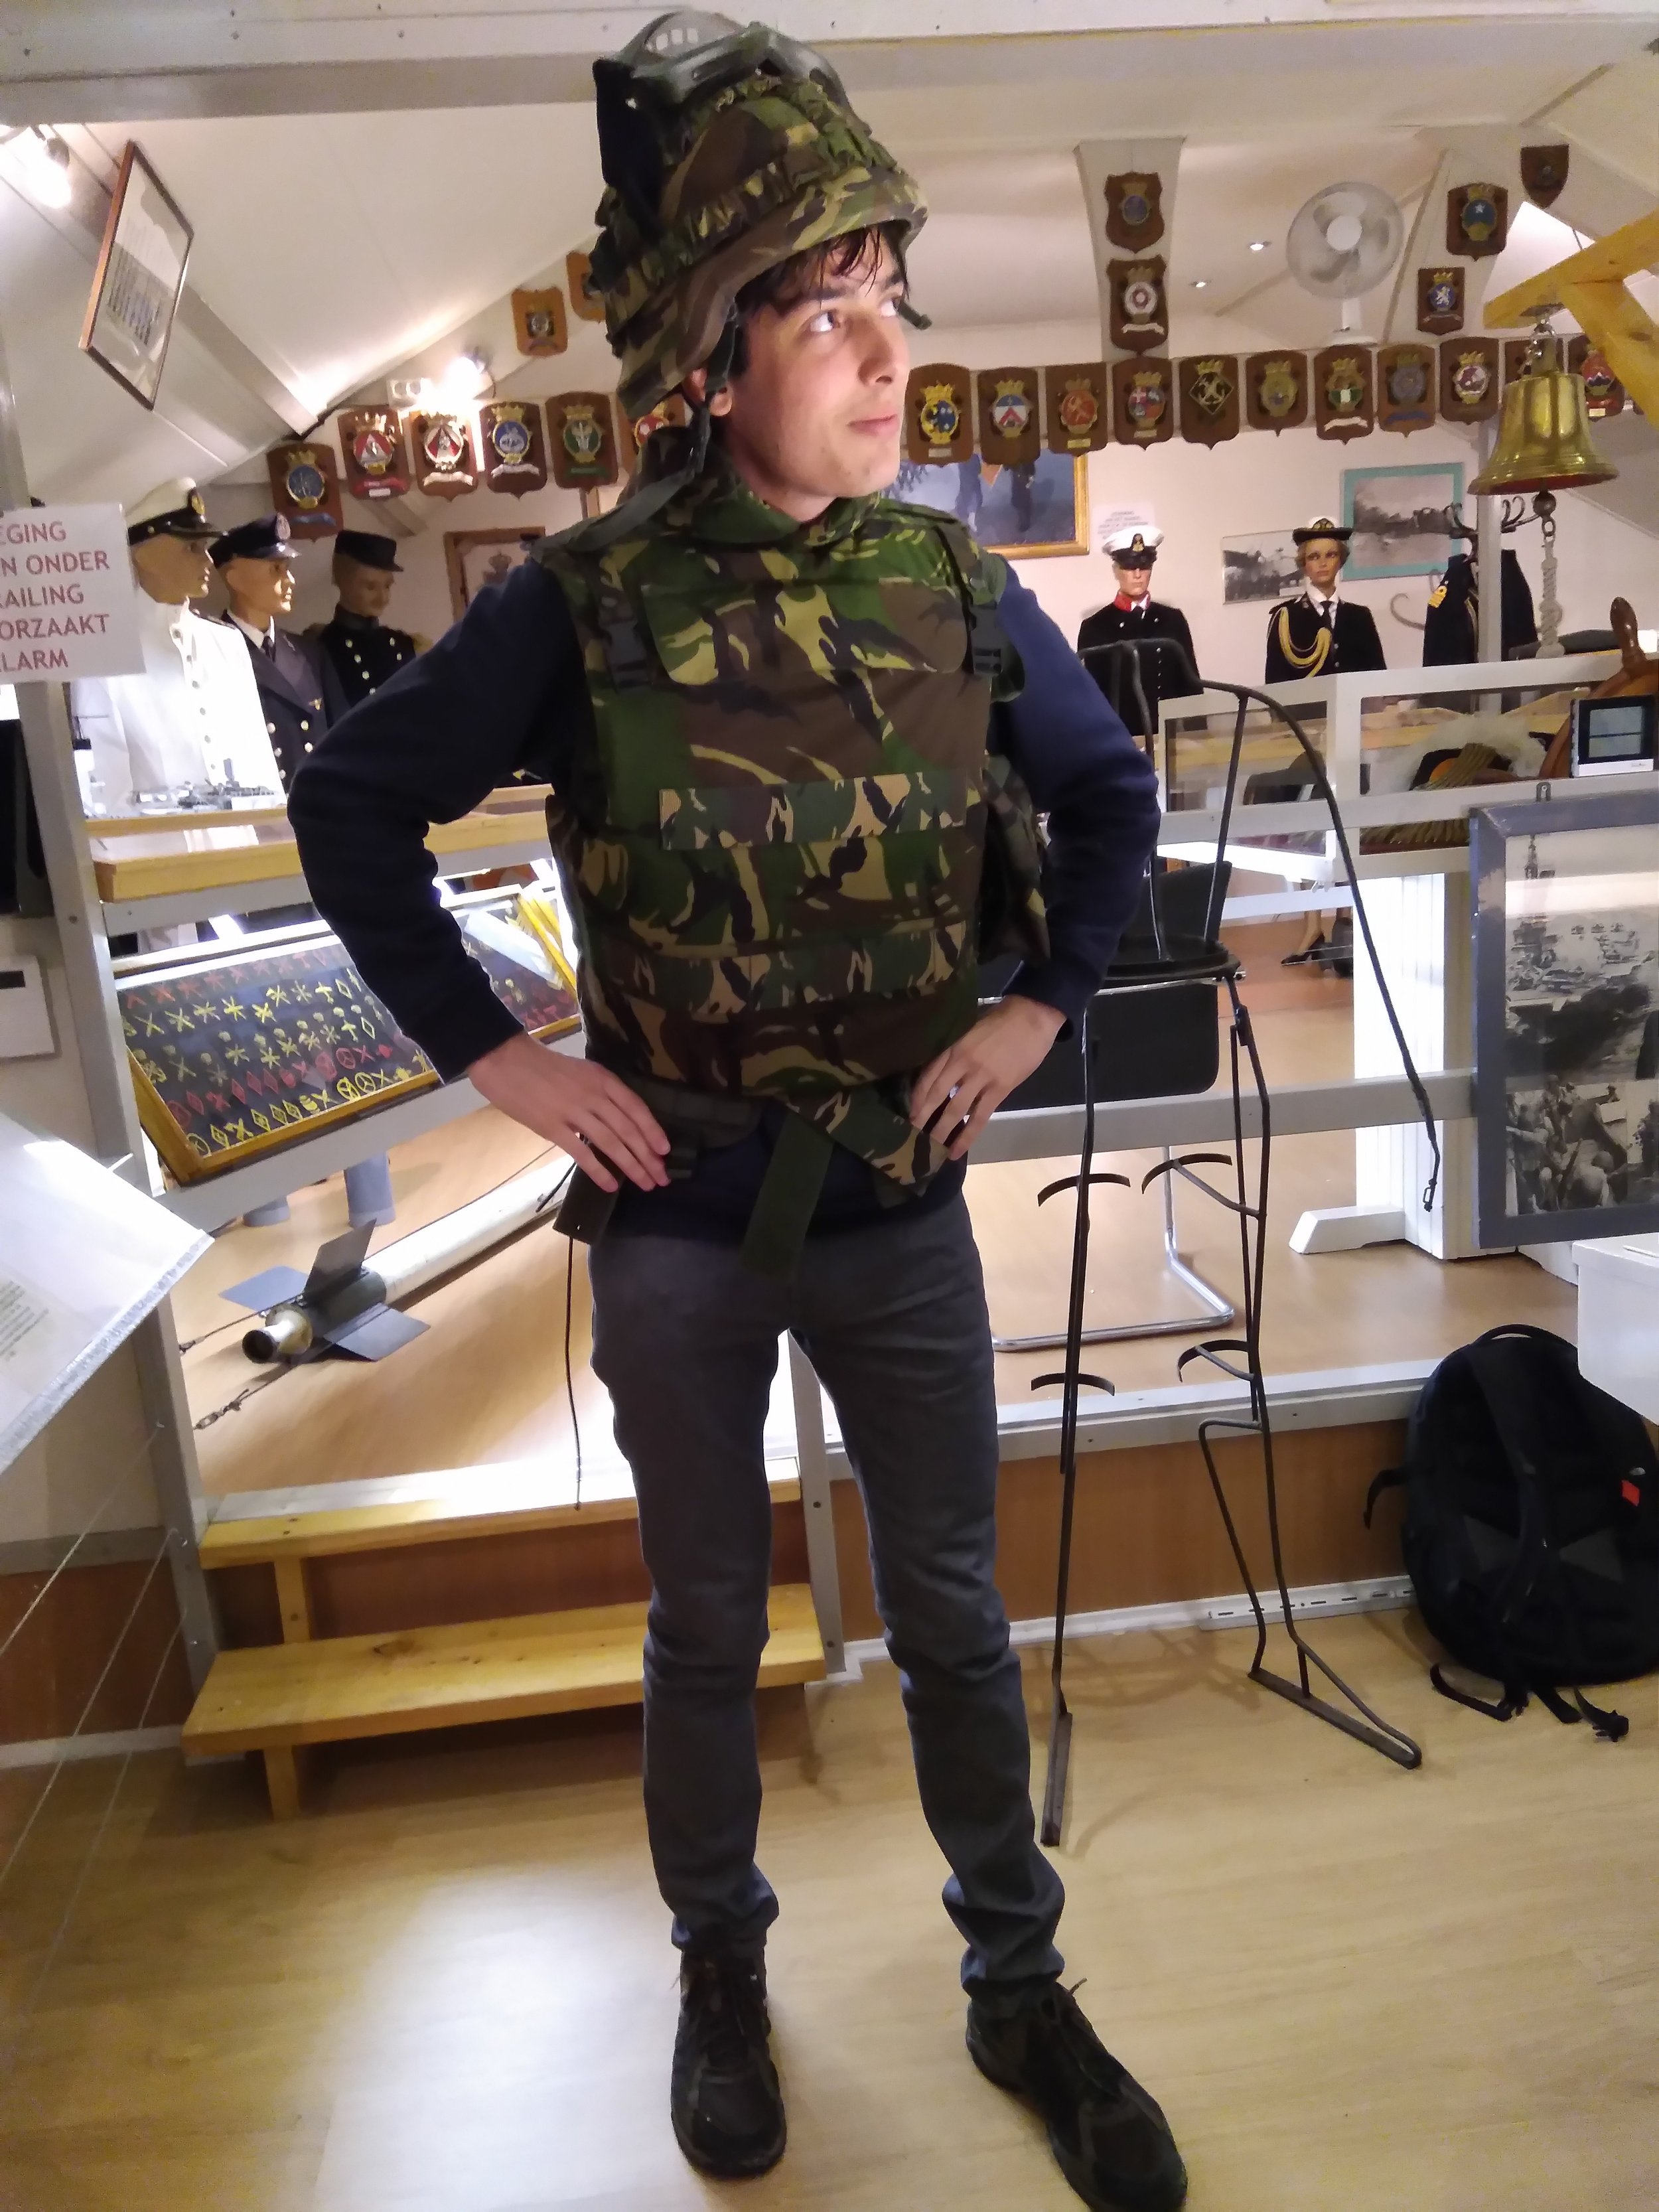 Museum Militaire Traditie, Introweek 2017